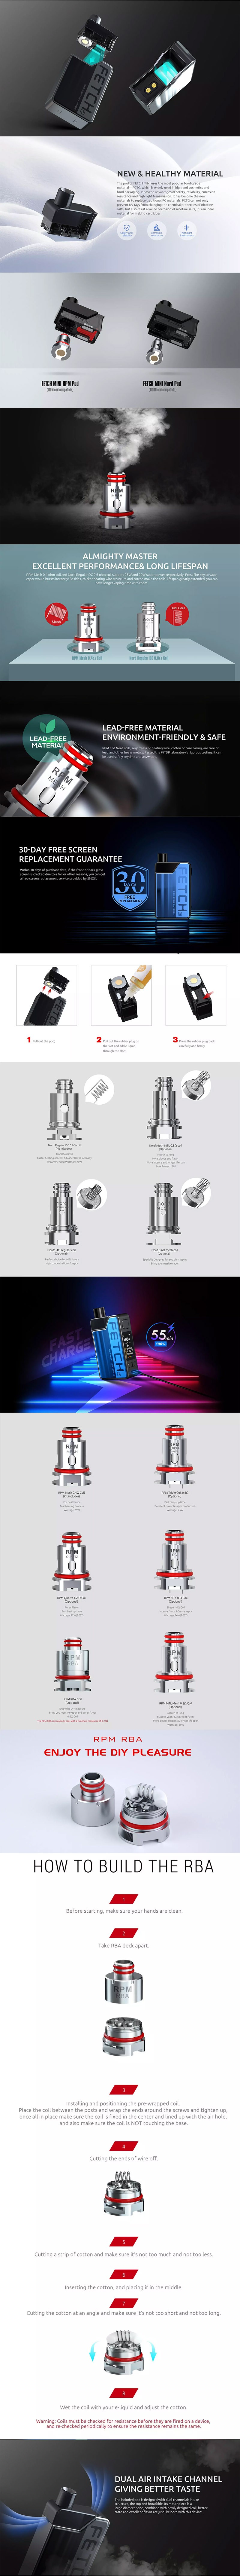 SMOKTech SMOK Fetch Mini 40W 1200mAh VW Box Mod Pod System Starter Kit